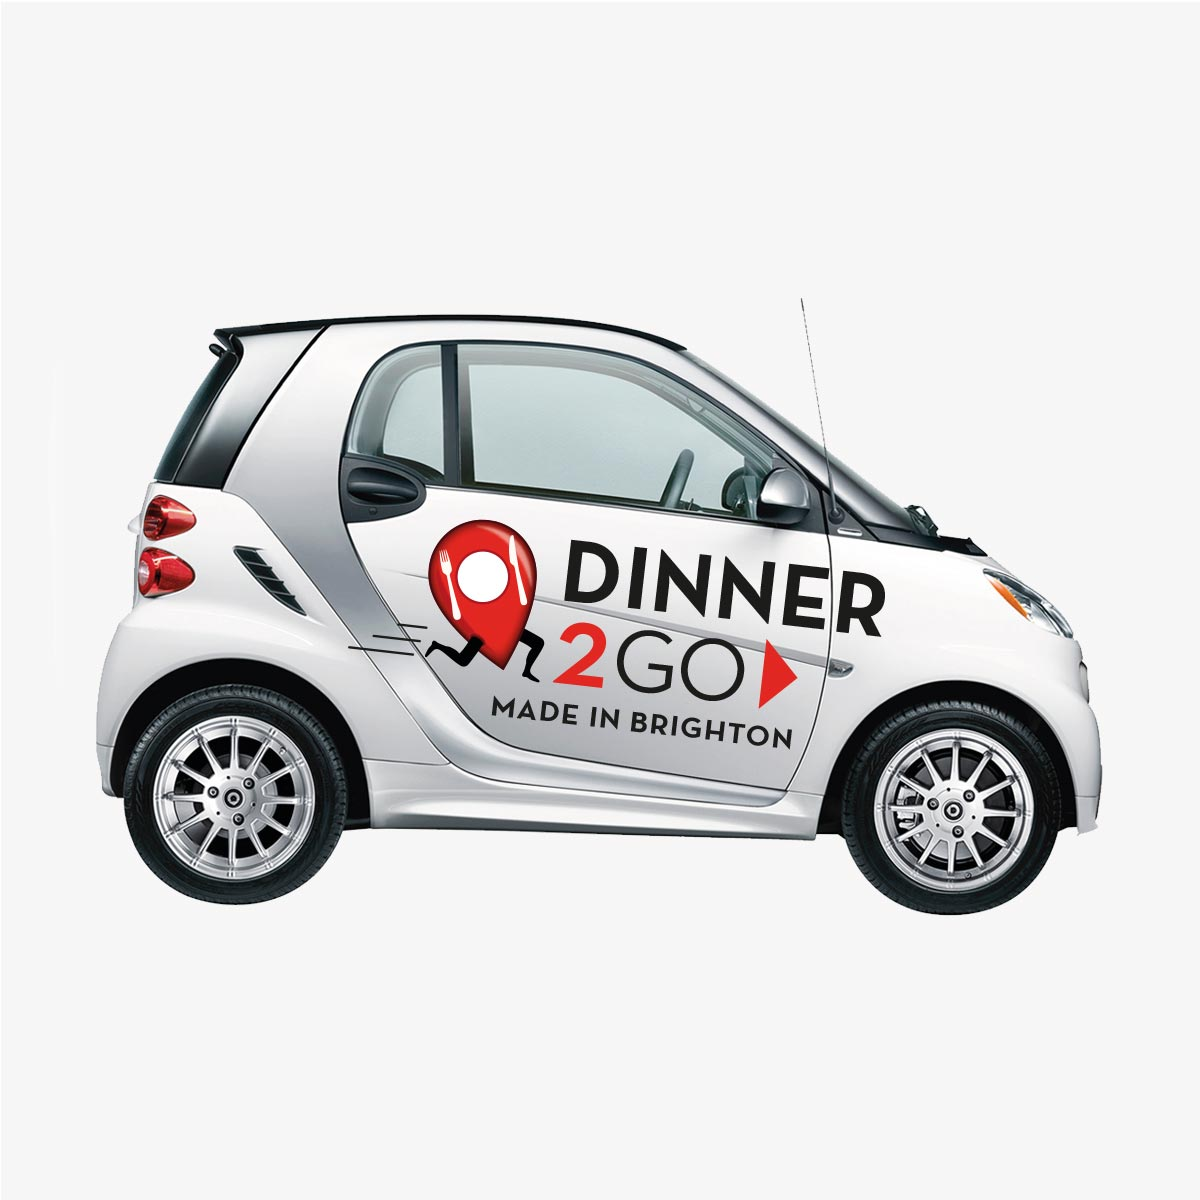 Dinner2Go-food-delivery-branding-graphics-5